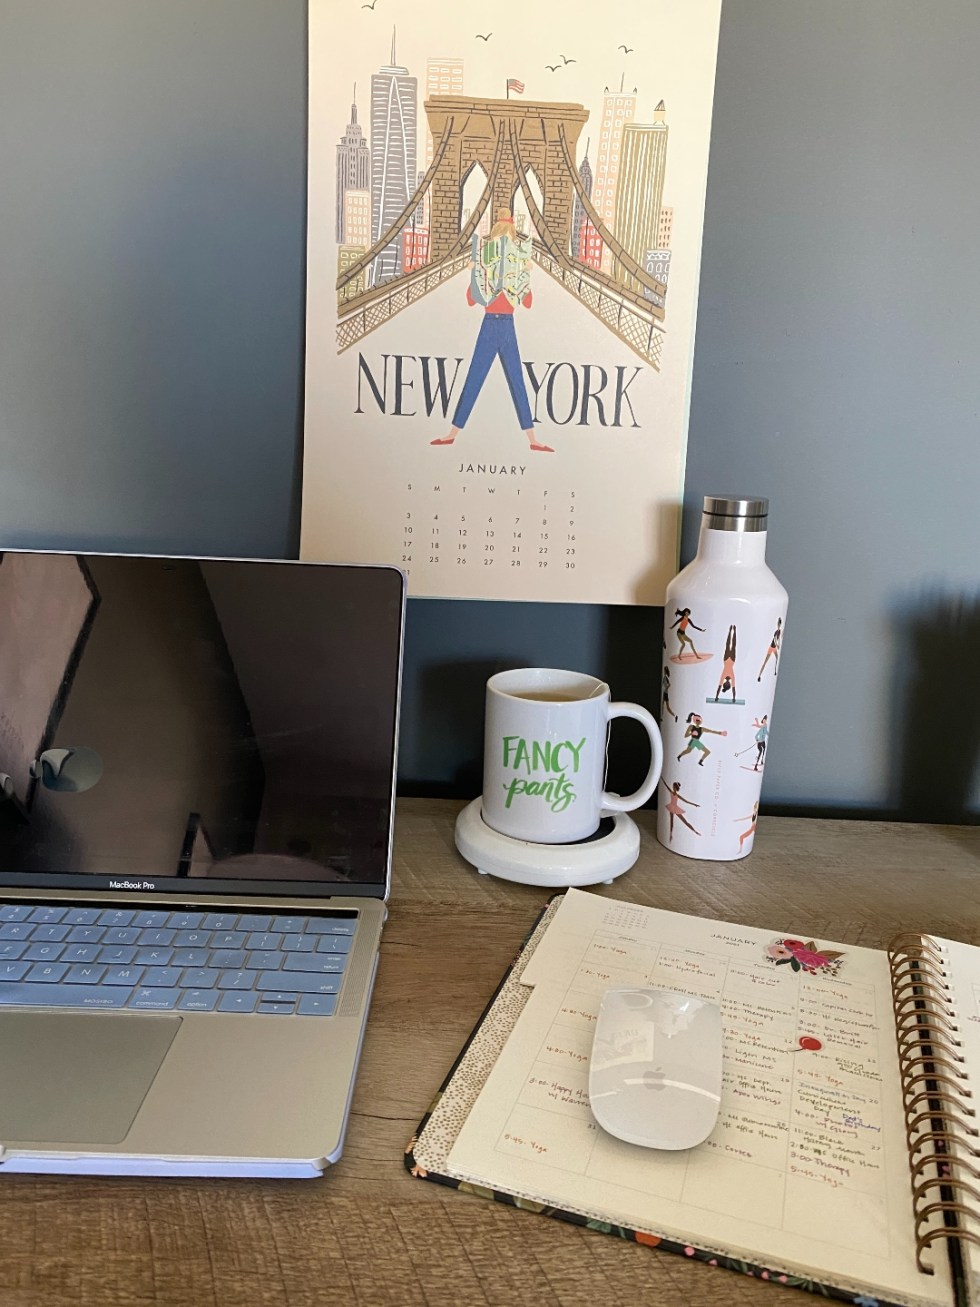 How to Make your Home Cozy: 10 Easy Ways - I'm Fixin' To - @imfixintoblog |How to Make Your Home Cozy by popular NC life and style blog, I'm Fixin' To: image of a open Mac laptop next to a ceramic mug on a mug warmer and a open day planner.